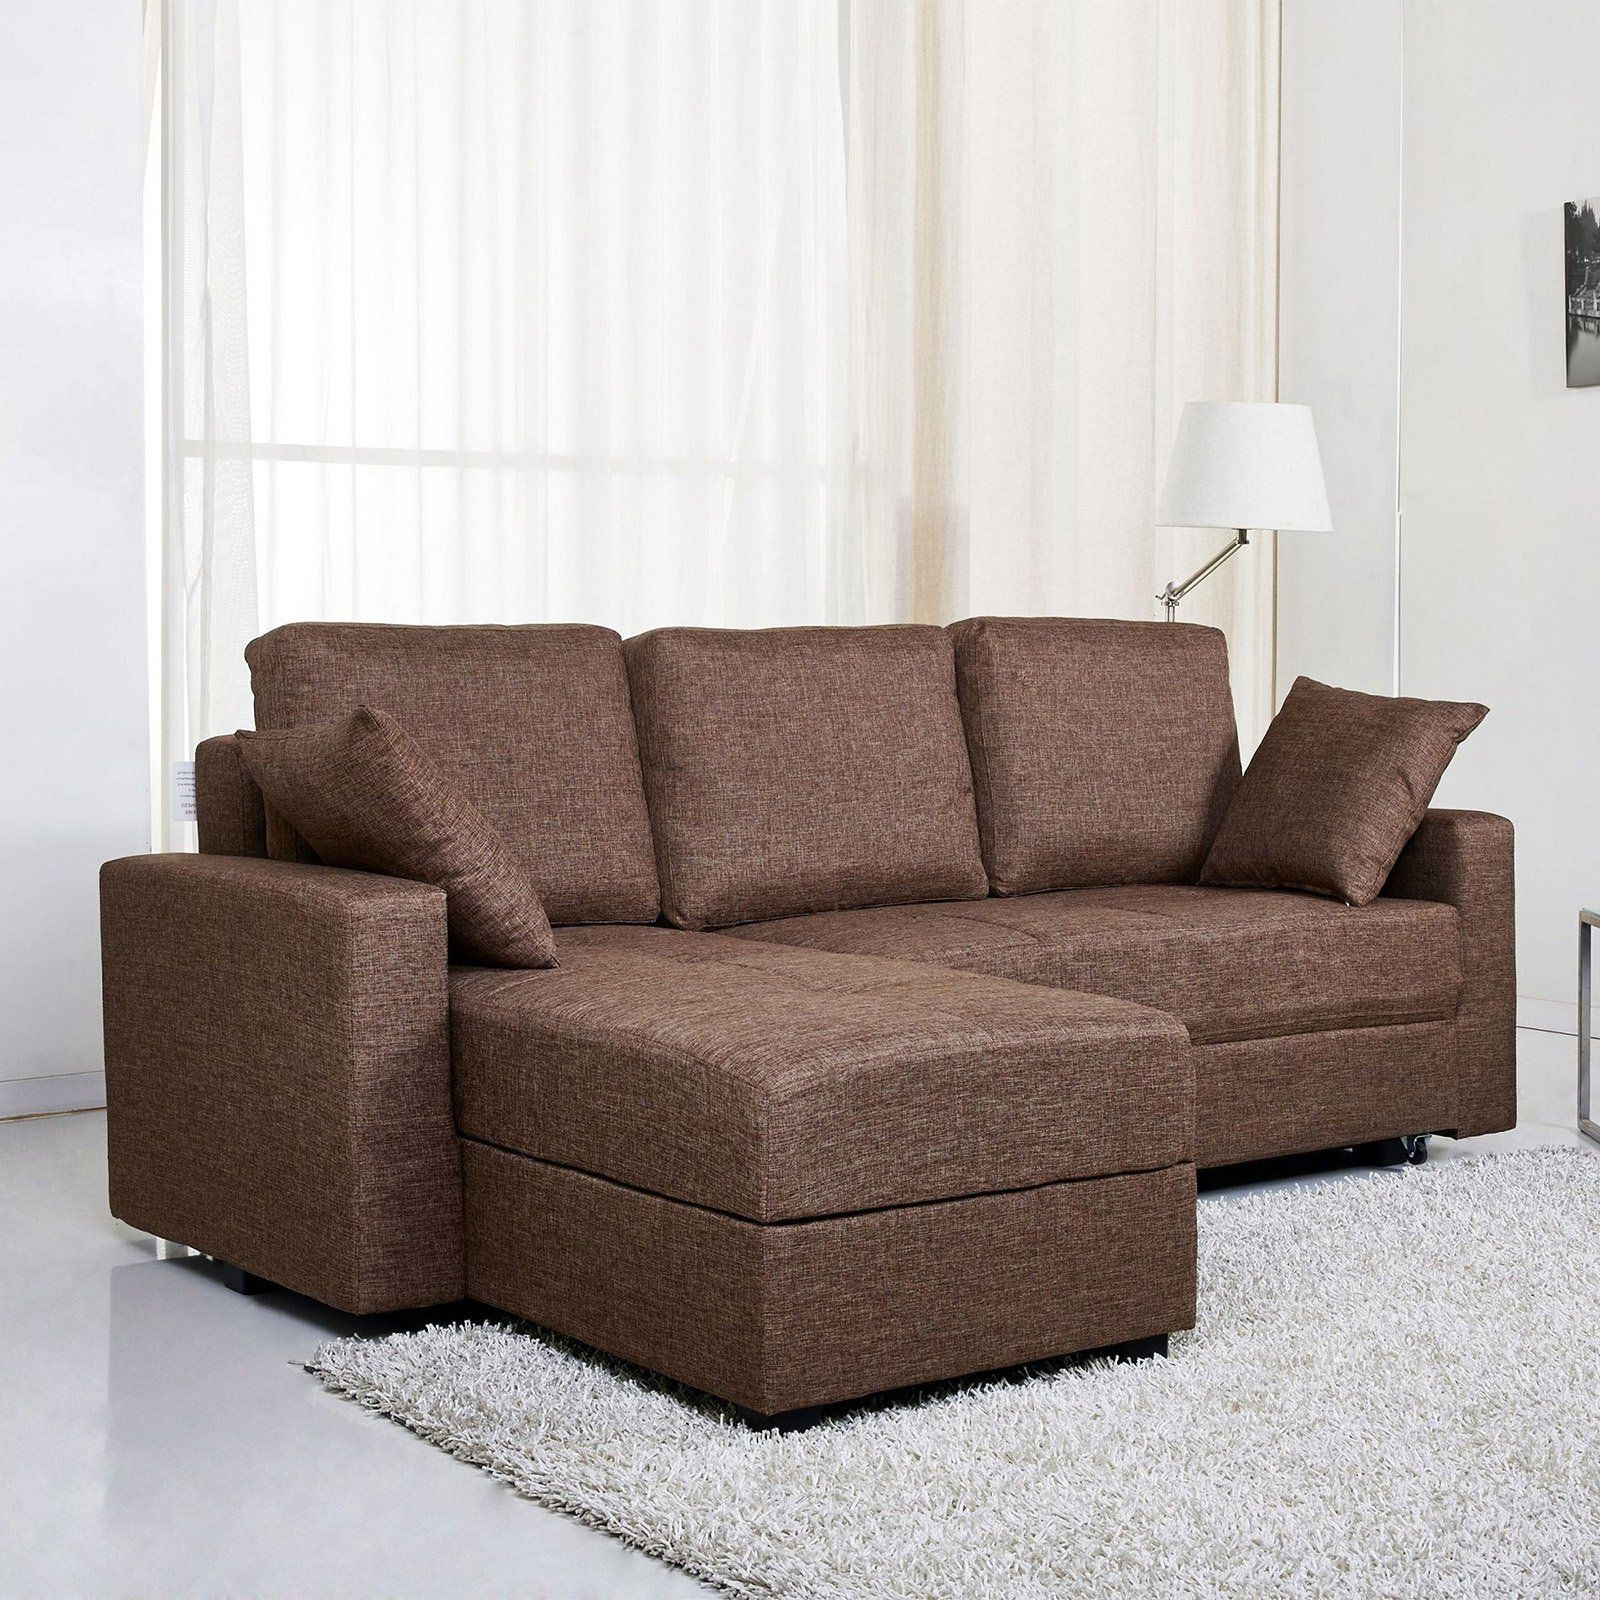 Gold Sparrow Aspen Fabric Convertible Storage Sectional Throughout Most Up To Date Live It Cozy Sectional Sofa Beds With Storage (View 10 of 25)